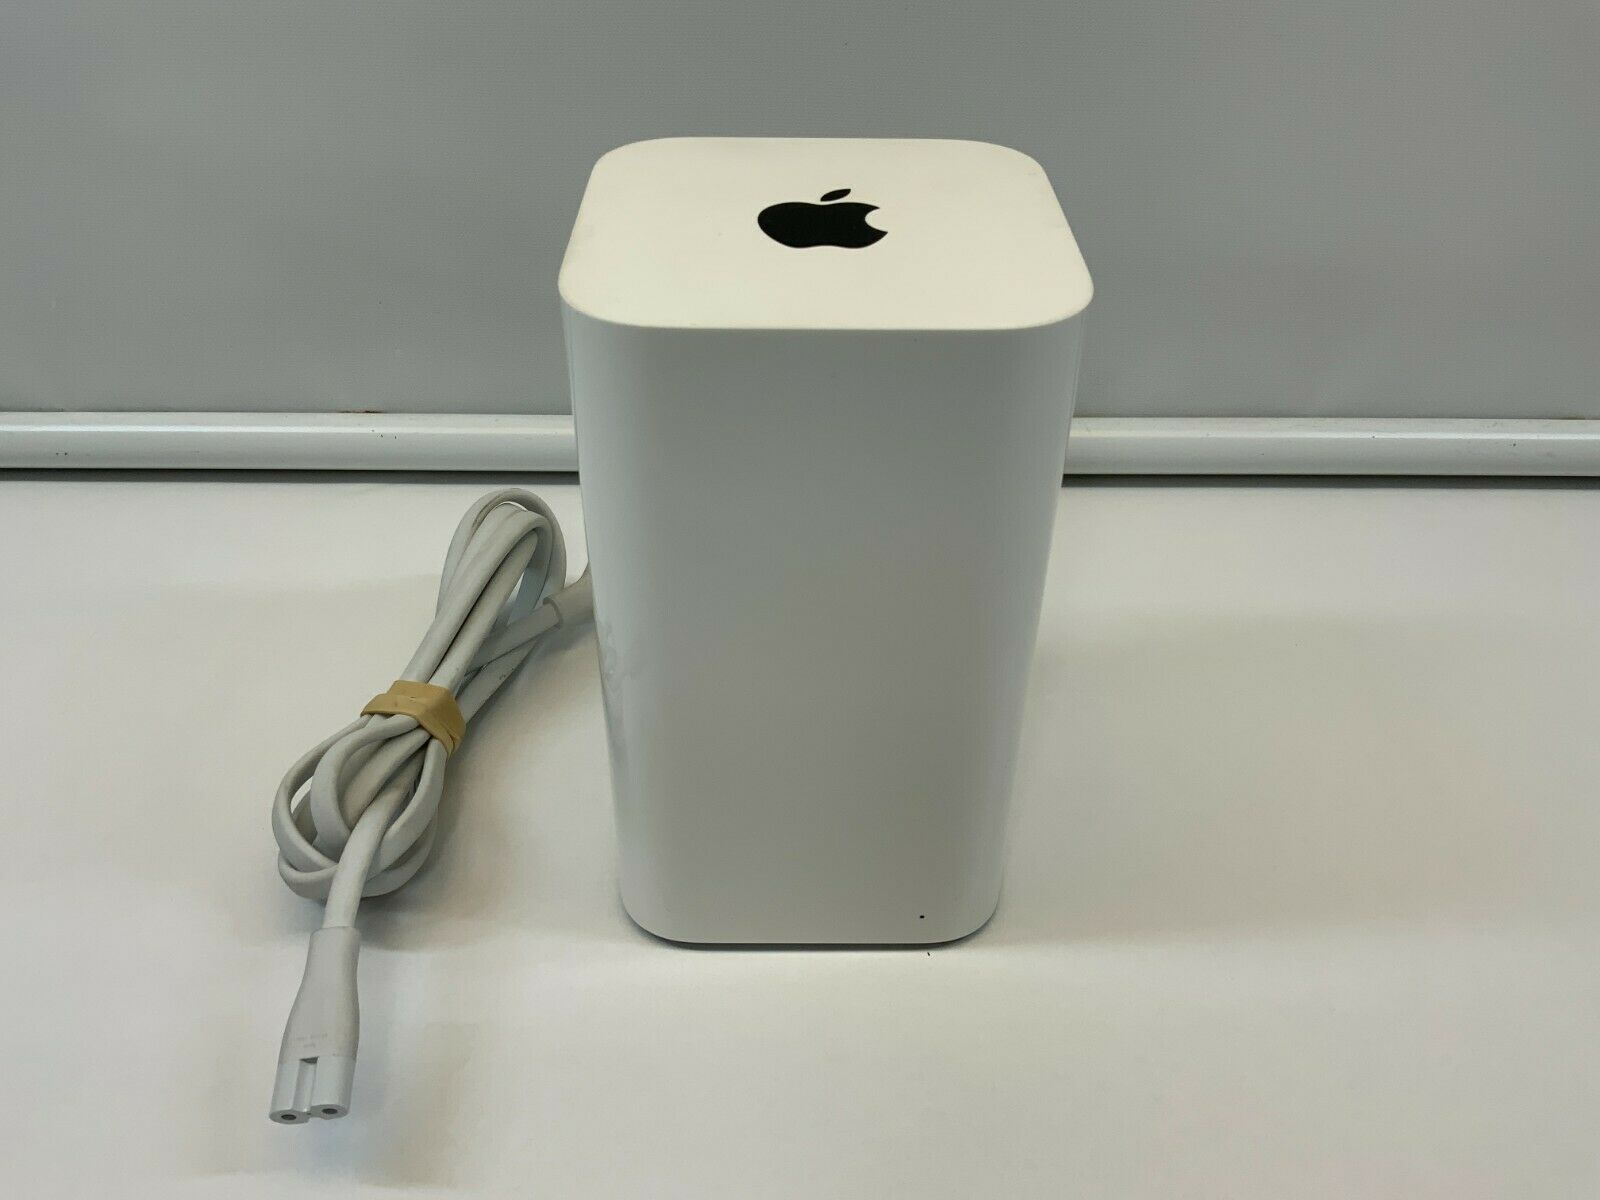 Apple A1470 Airport Extreme Time Capsule 2TB Hard Drive/Wireless Router 802.11ac